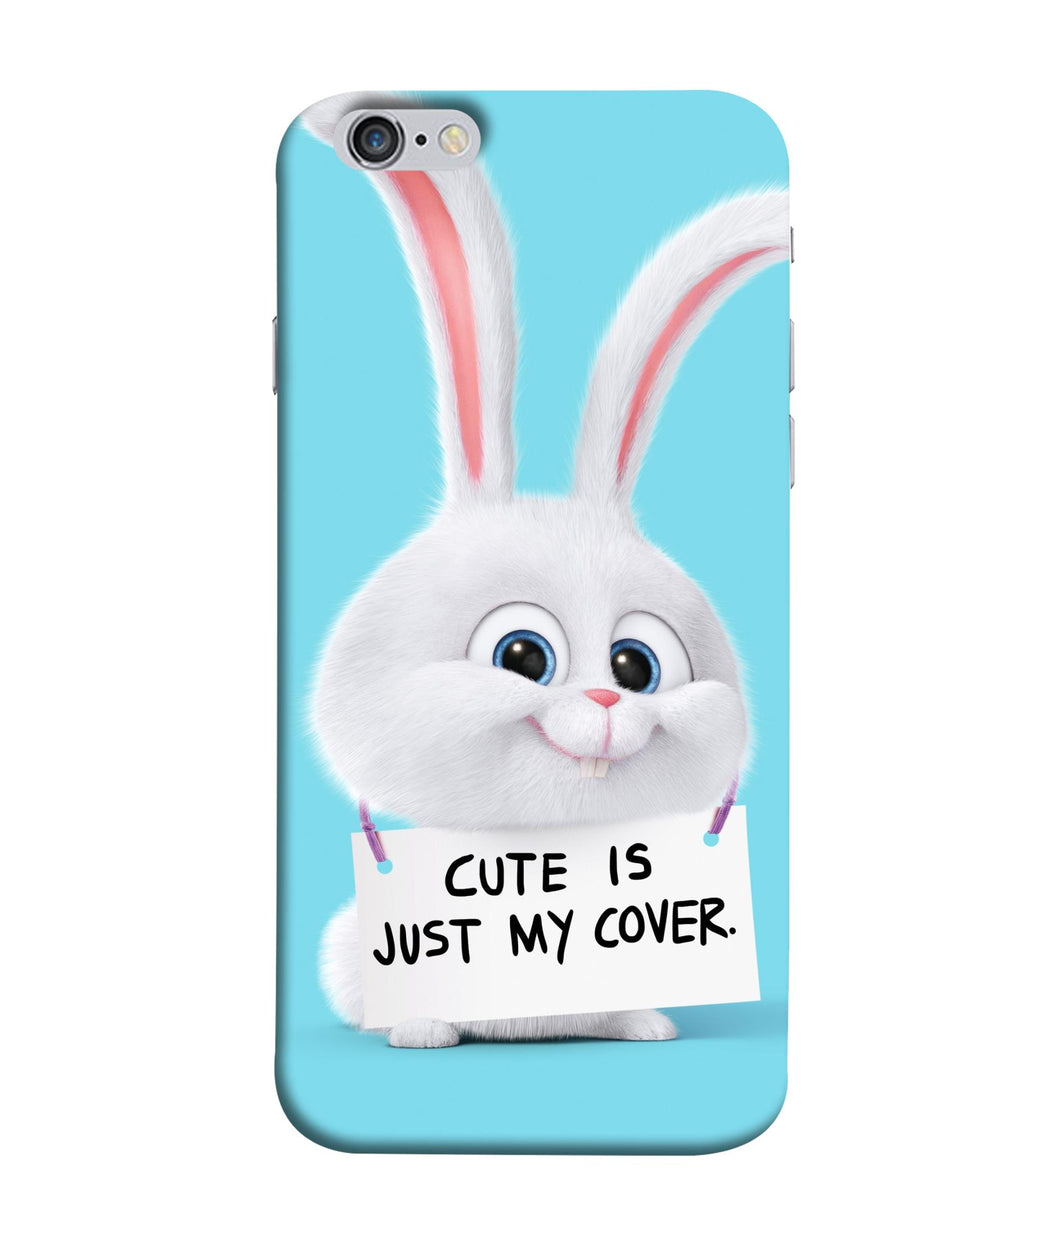 Apple Iphone 6 Plus Bunny Mobile cover